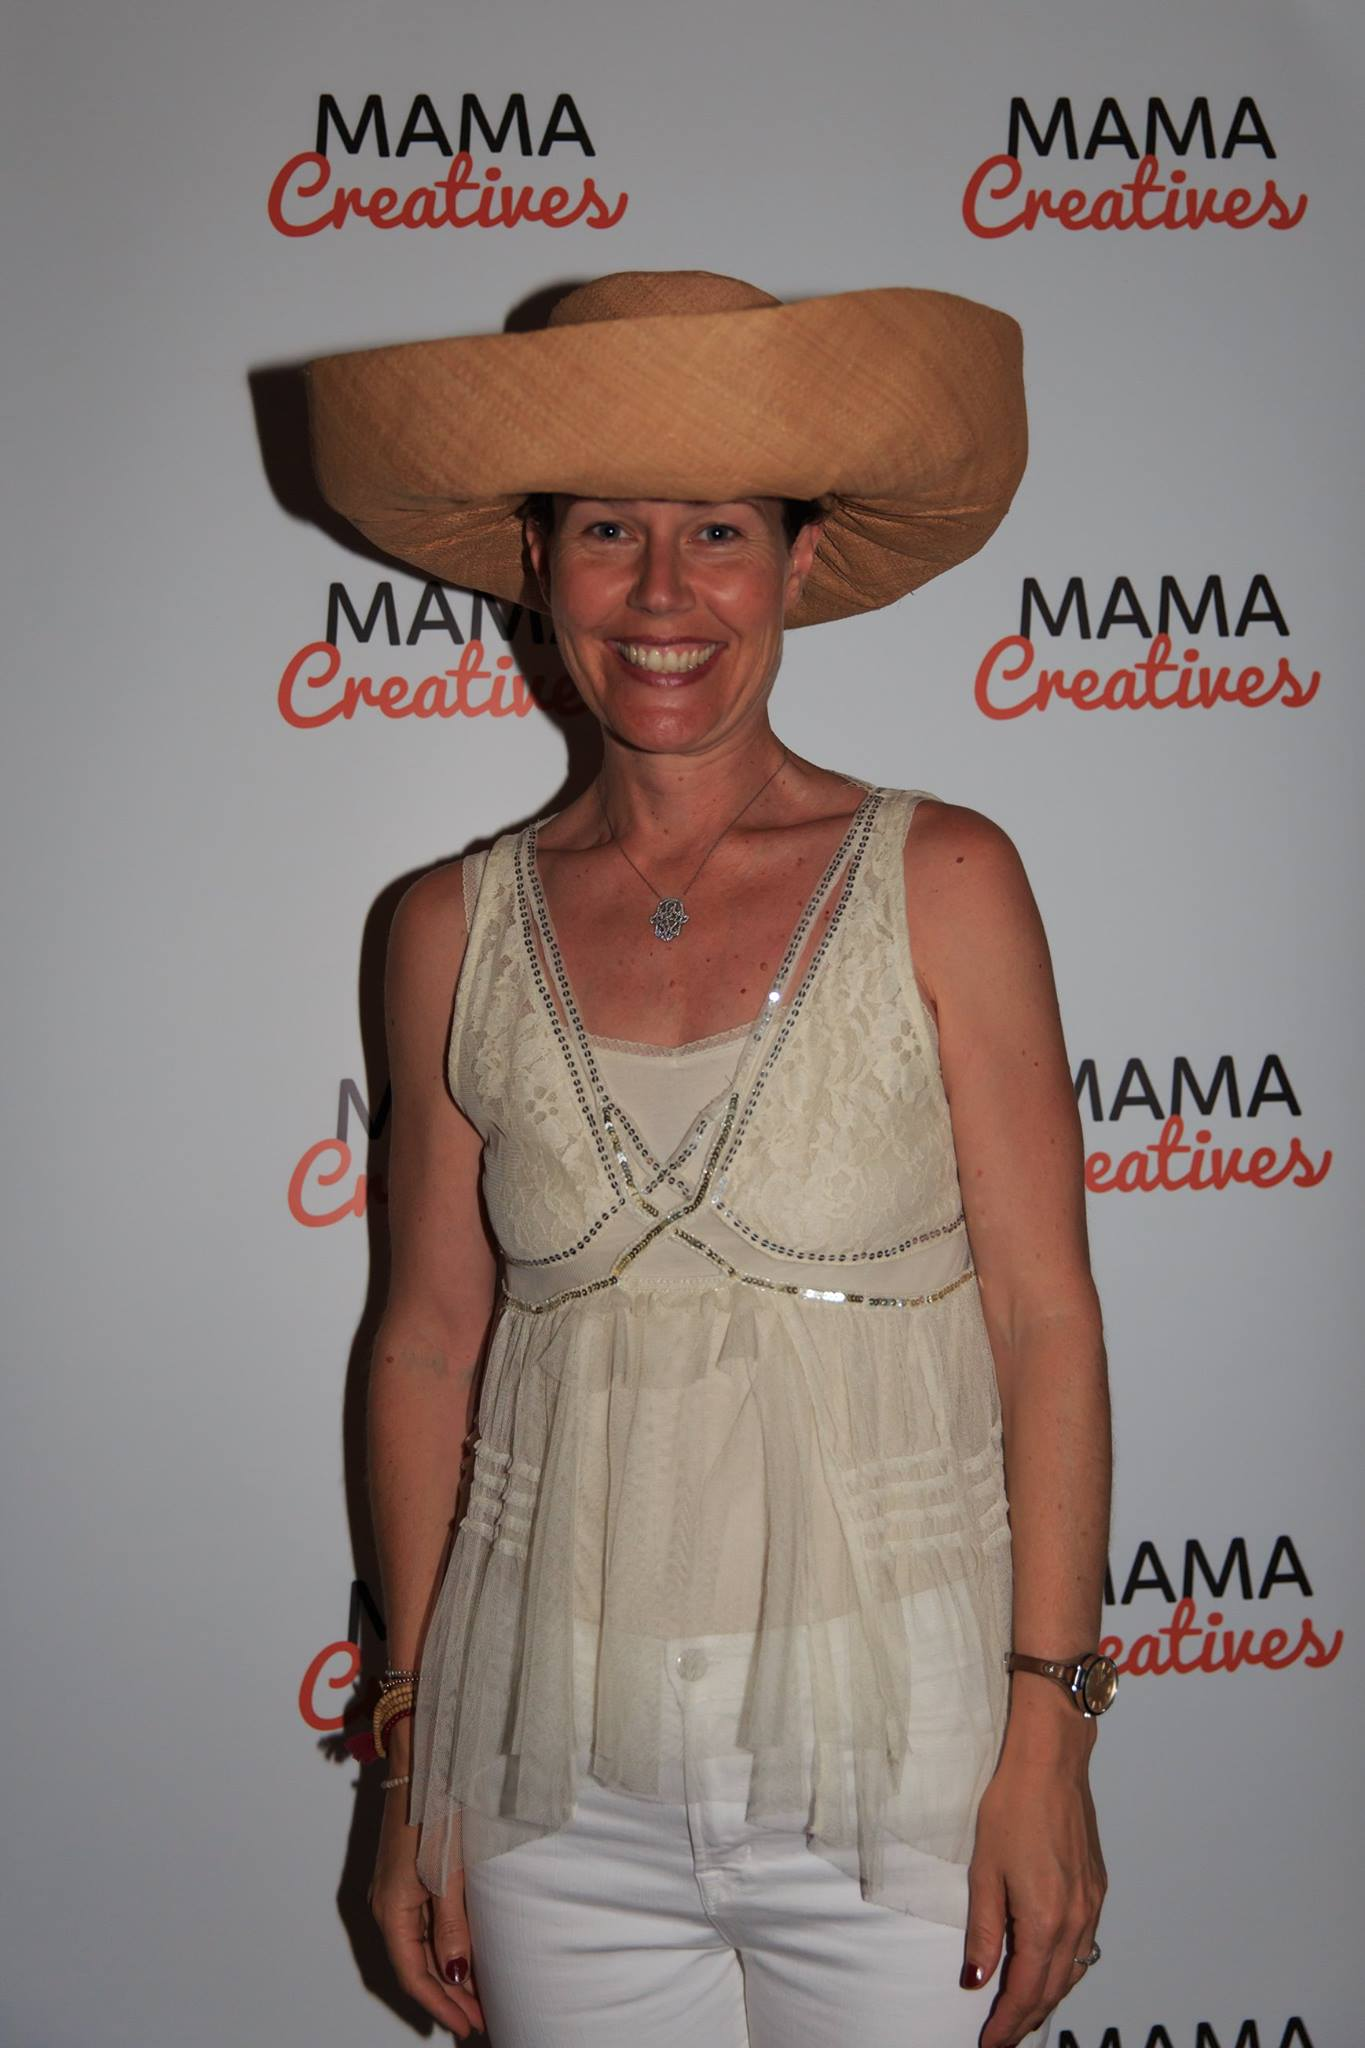 Fabulous giveaways! Thanks to the amazing La Luna Lifestyle for generously donating this fabulous beach hat, all ready for summer!  https://www.lalunalifestyle.com/